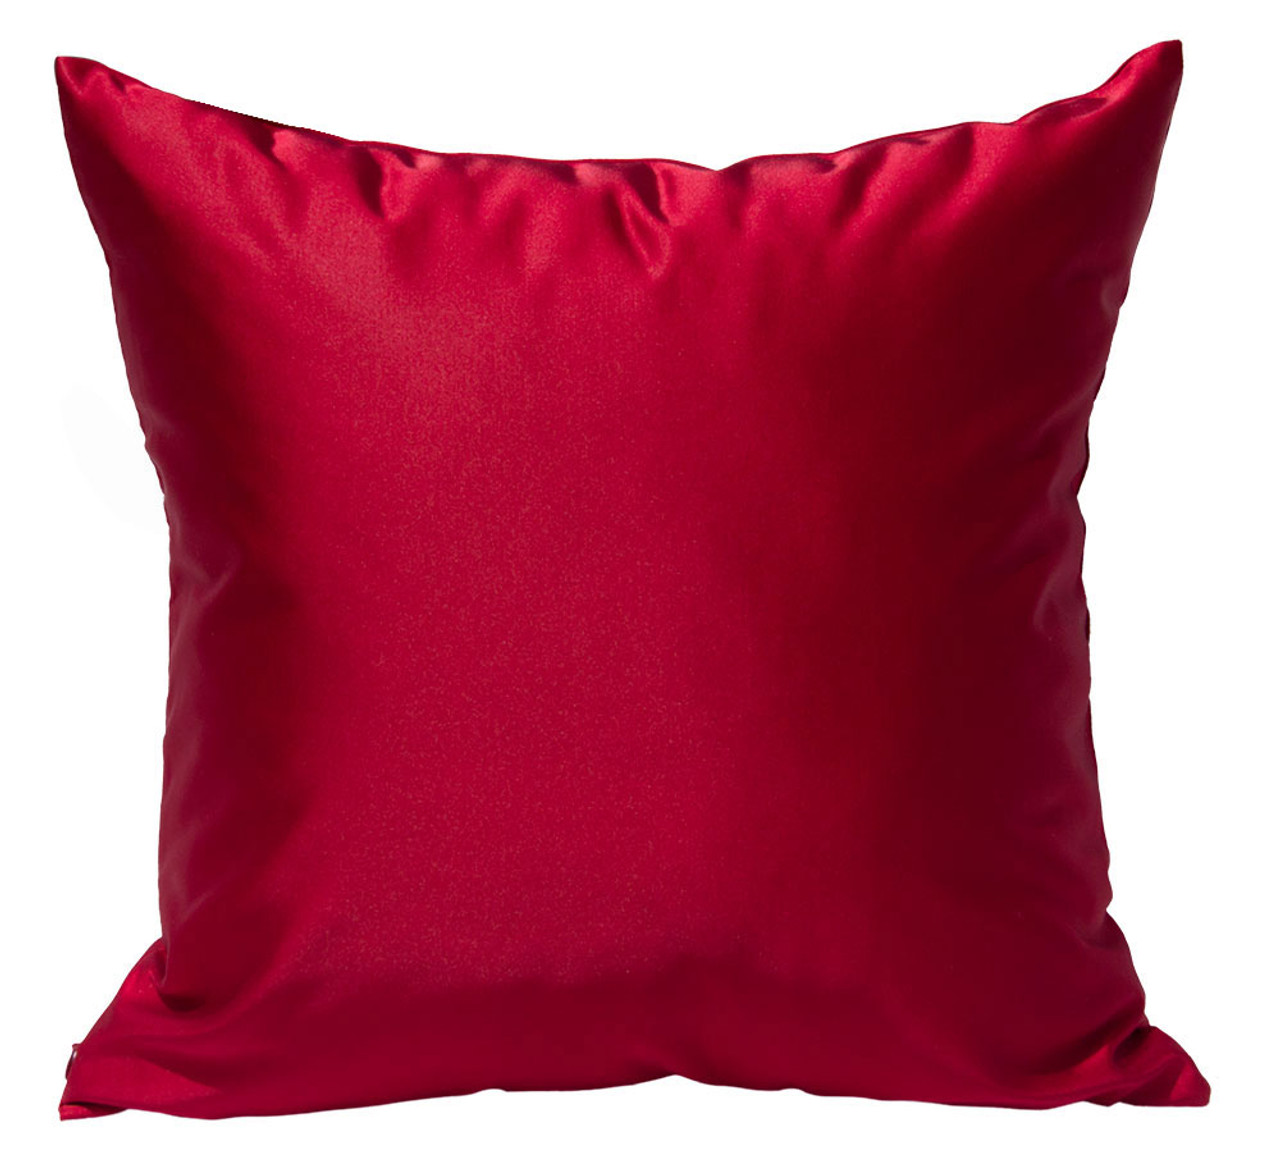 tangdepot solid silky throw pillow covers shining and luxury cushion covers